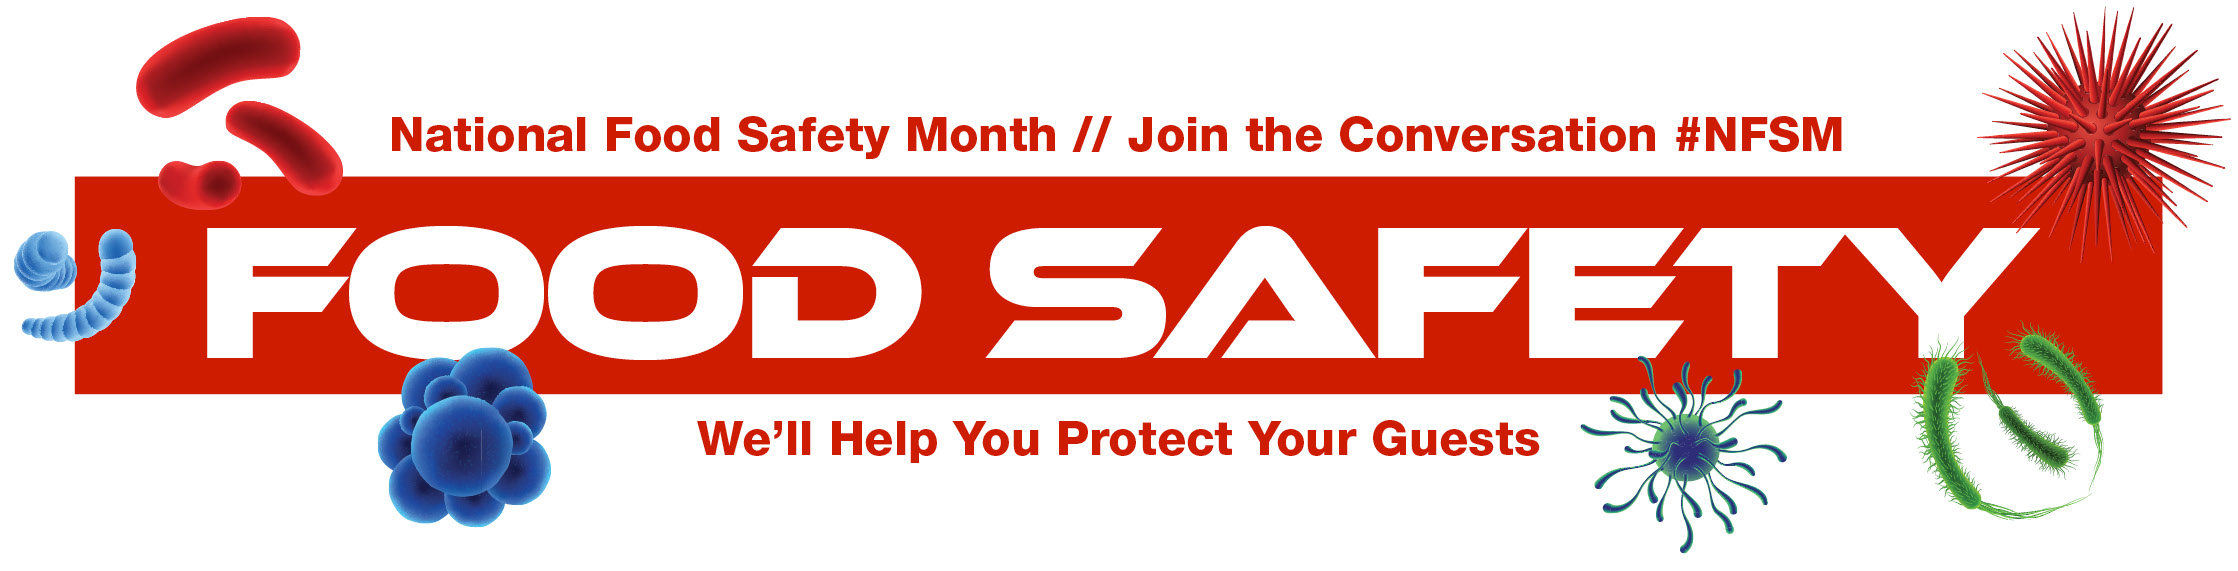 Food Safety Month Image